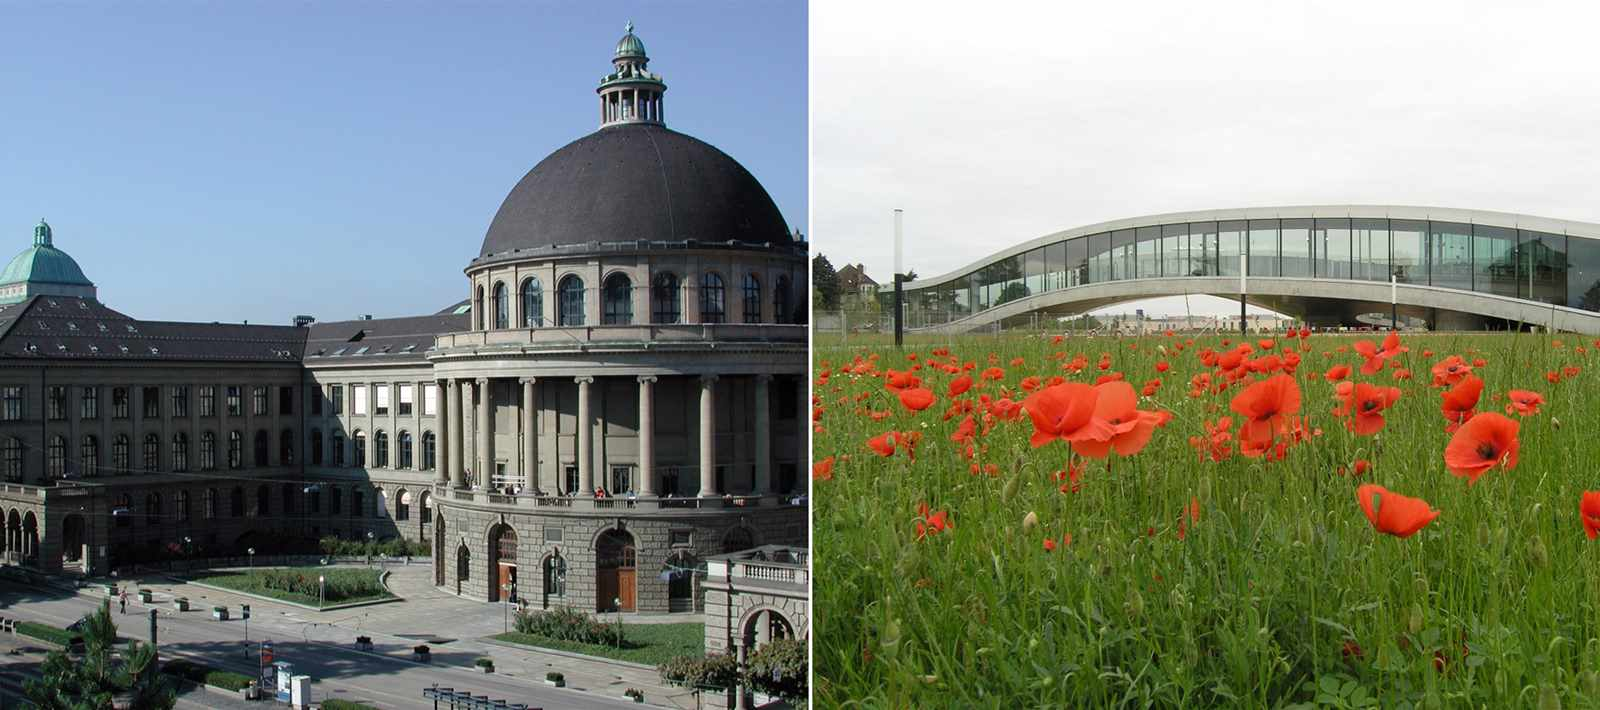 The Swiss Federal Institutes of Technology are two institutes of higher education. The …